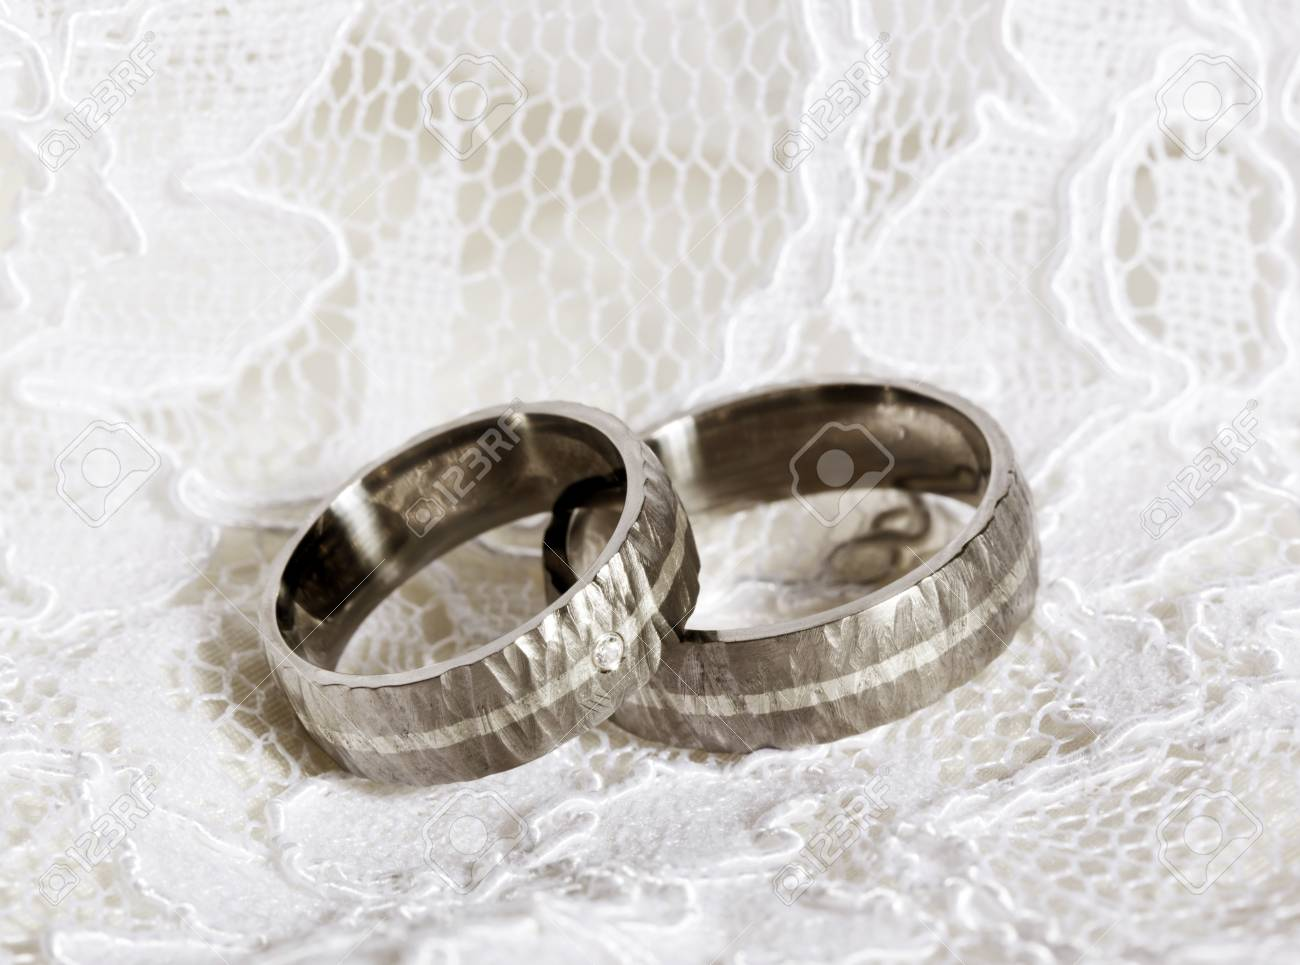 Pair Of Rustic Wedding Rings On White Lace Stock Photo Picture And